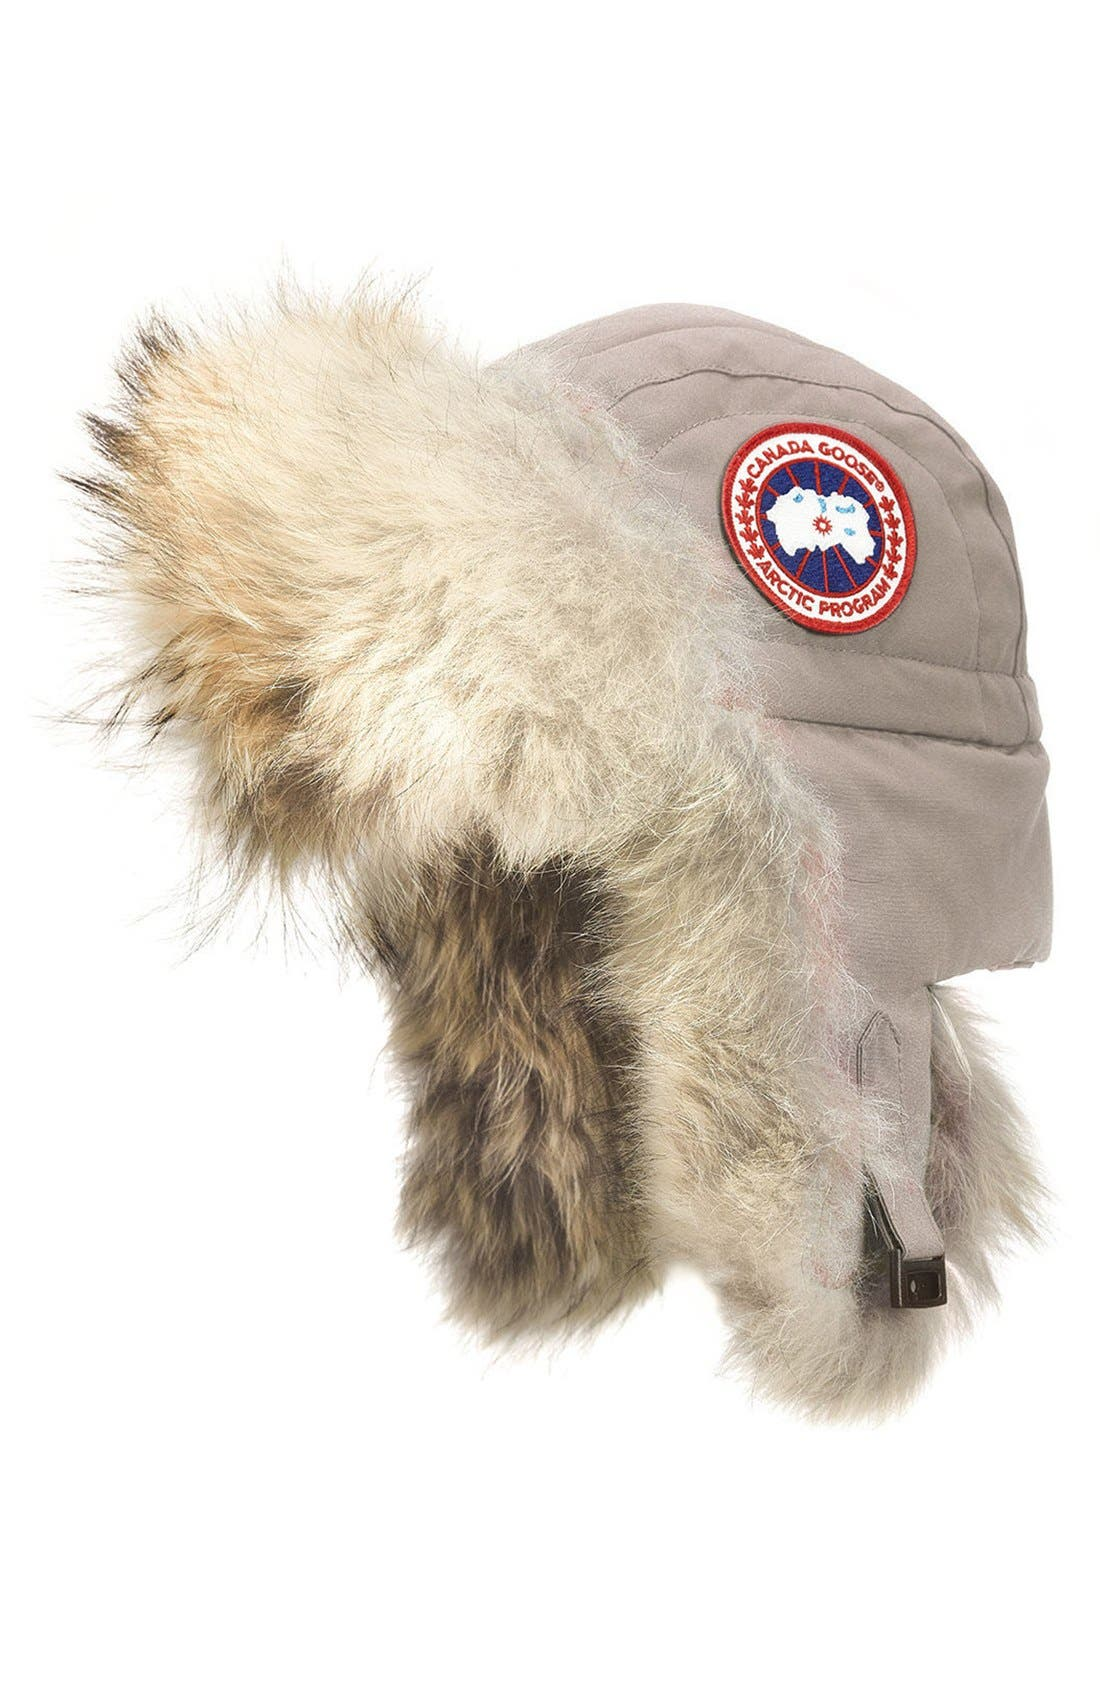 59725db5665 Canada Goose Aviator Hat With Genuine Coyote Fur Trim In Red ...